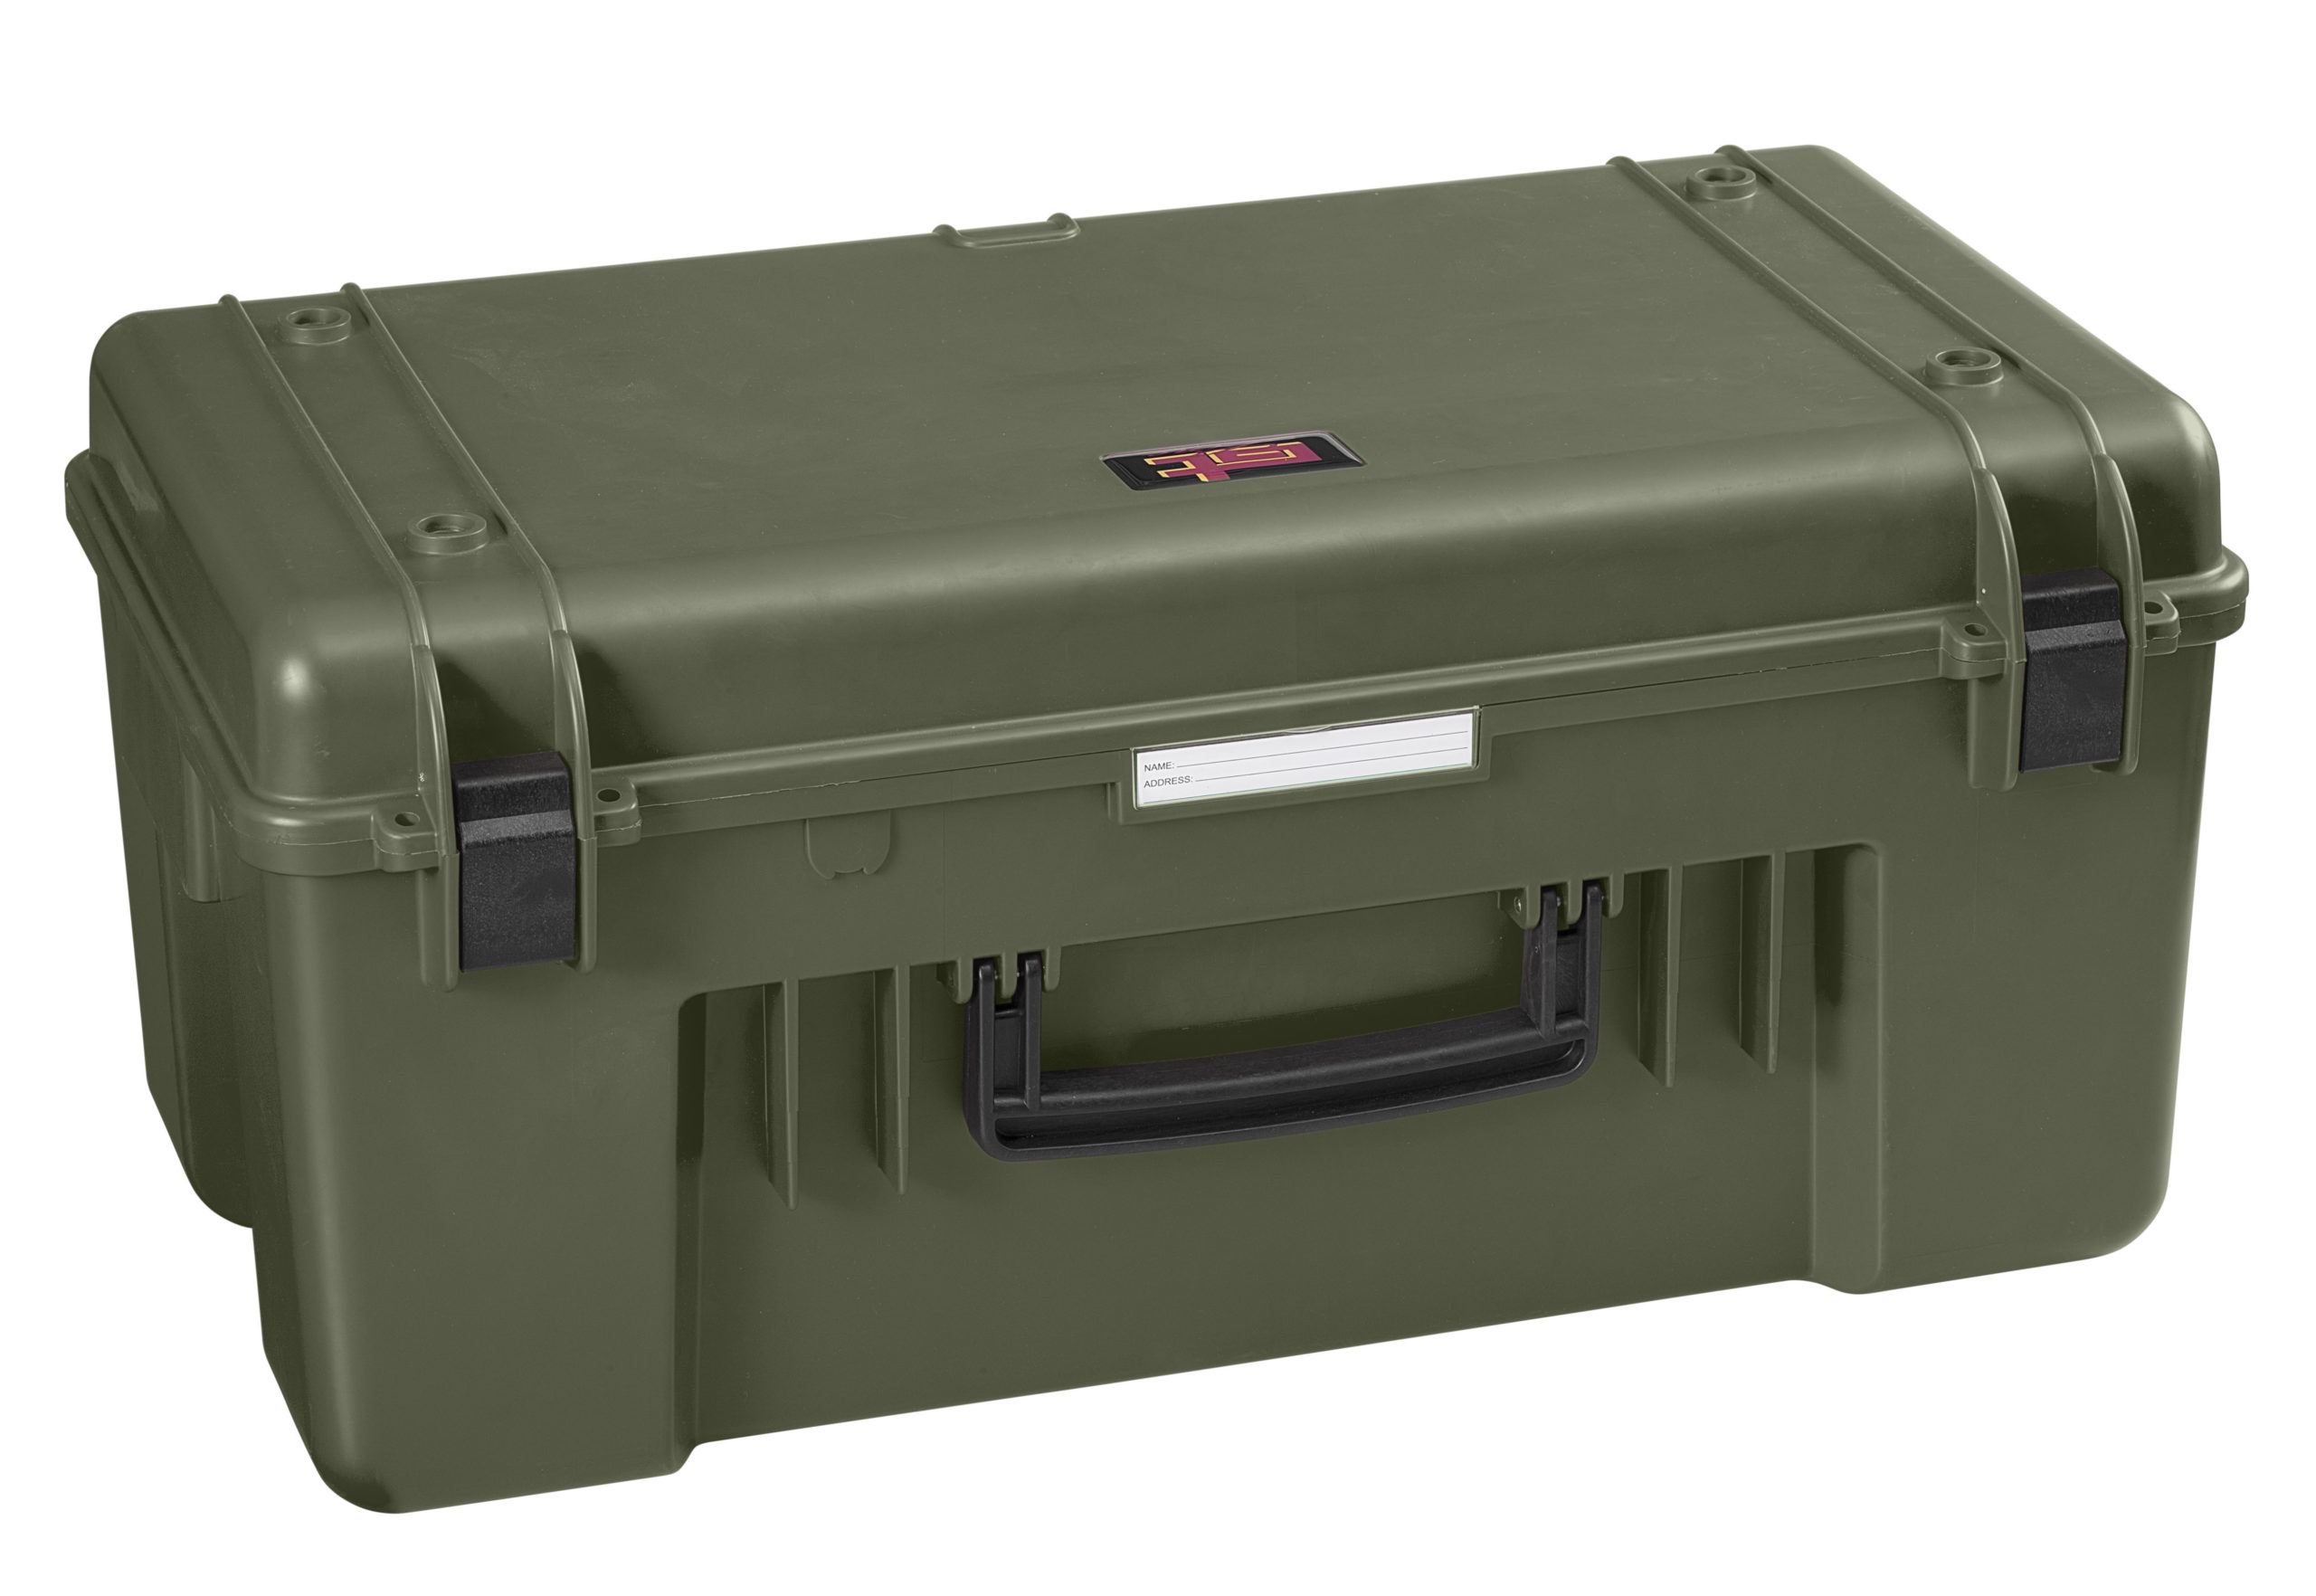 Explorer Cases Multi Utility Box MUB 65 - 678x340x312 - Mehrzweckbox